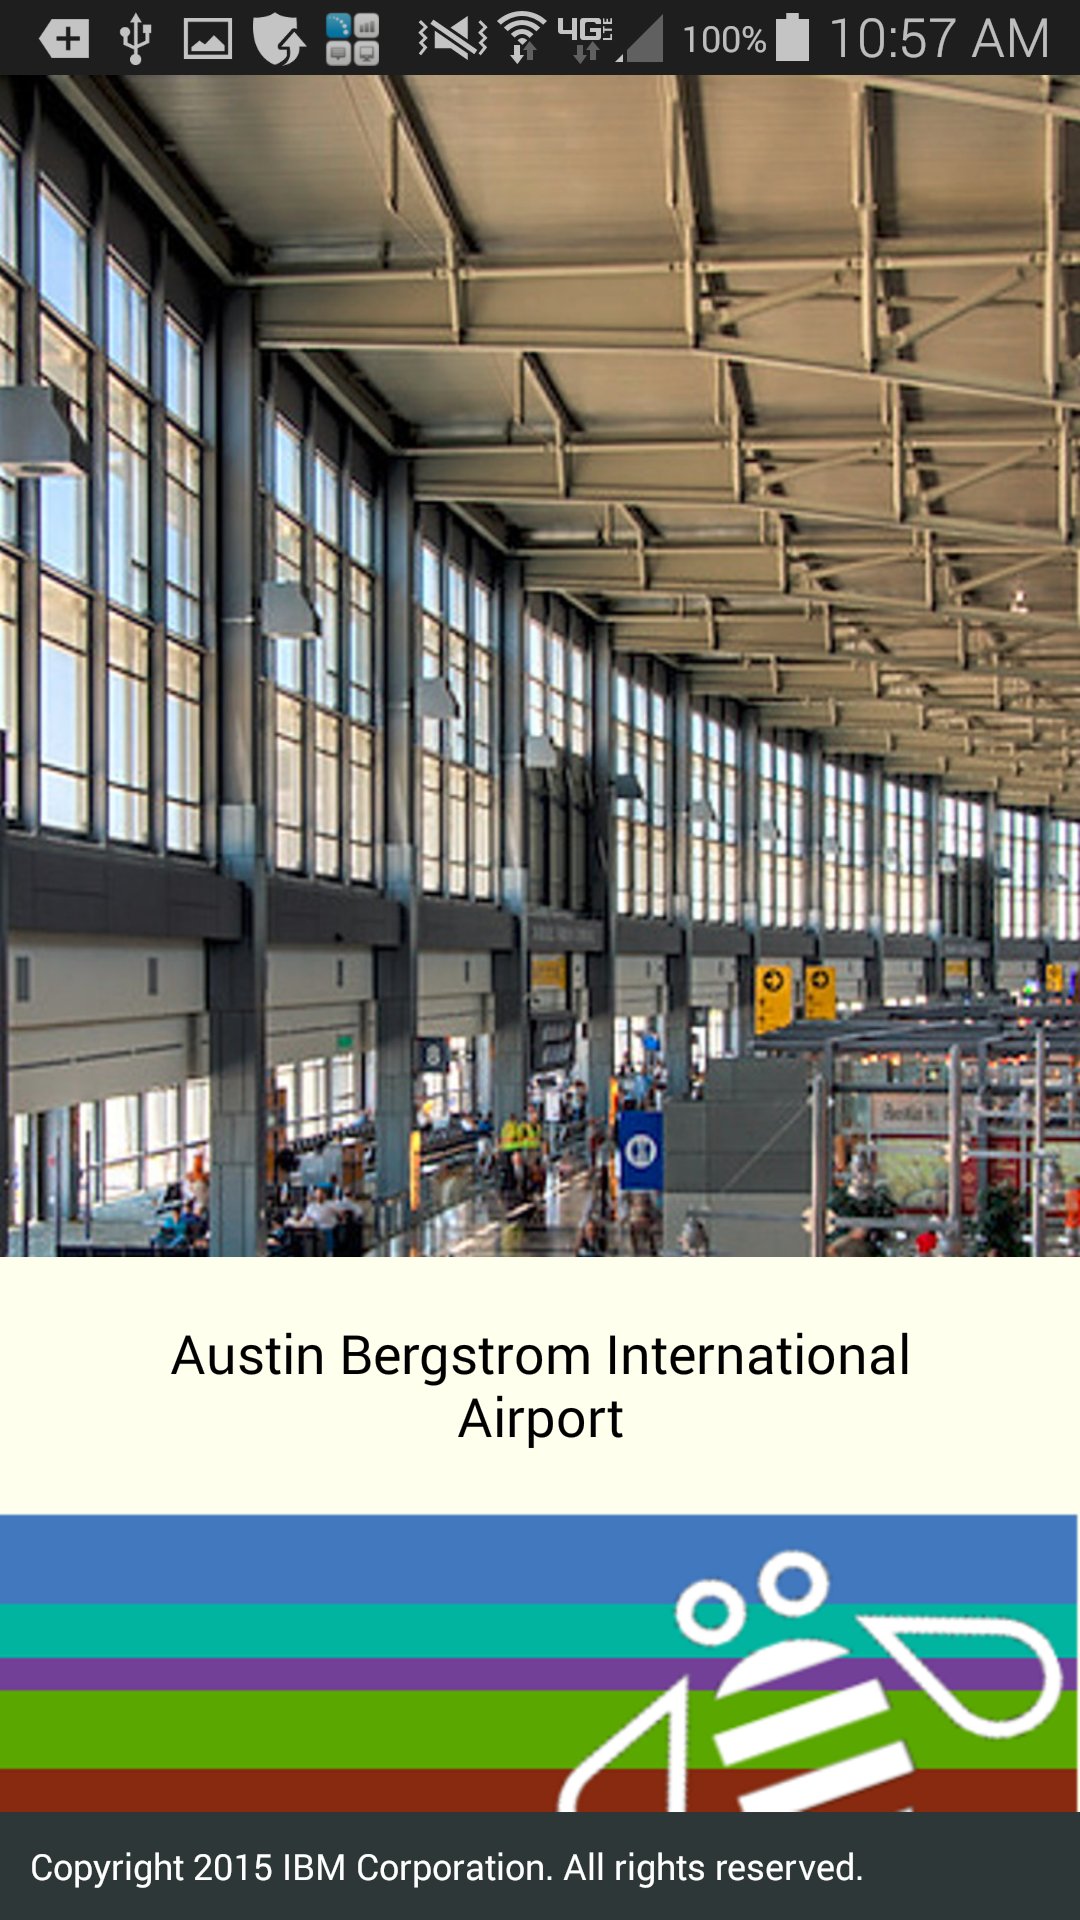 Screenshot of loading screen from IBM Accessible Airport App